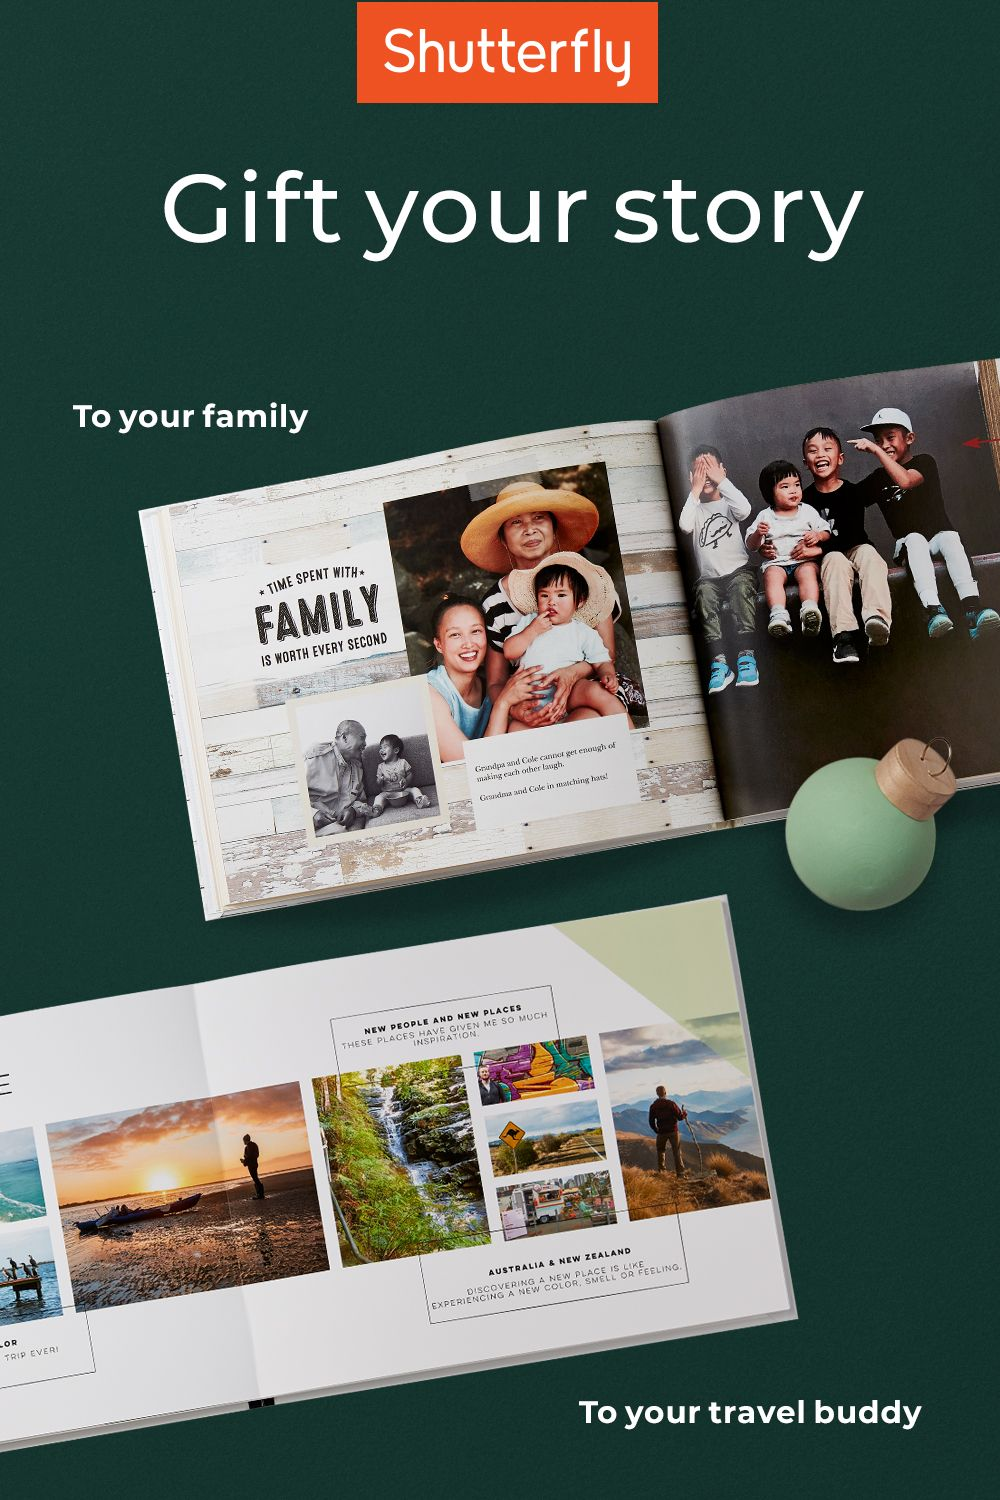 1d8bf55c2ff1e56dcc9e4050b734420a - How Long Does It Take To Get Your Shutterfly Book